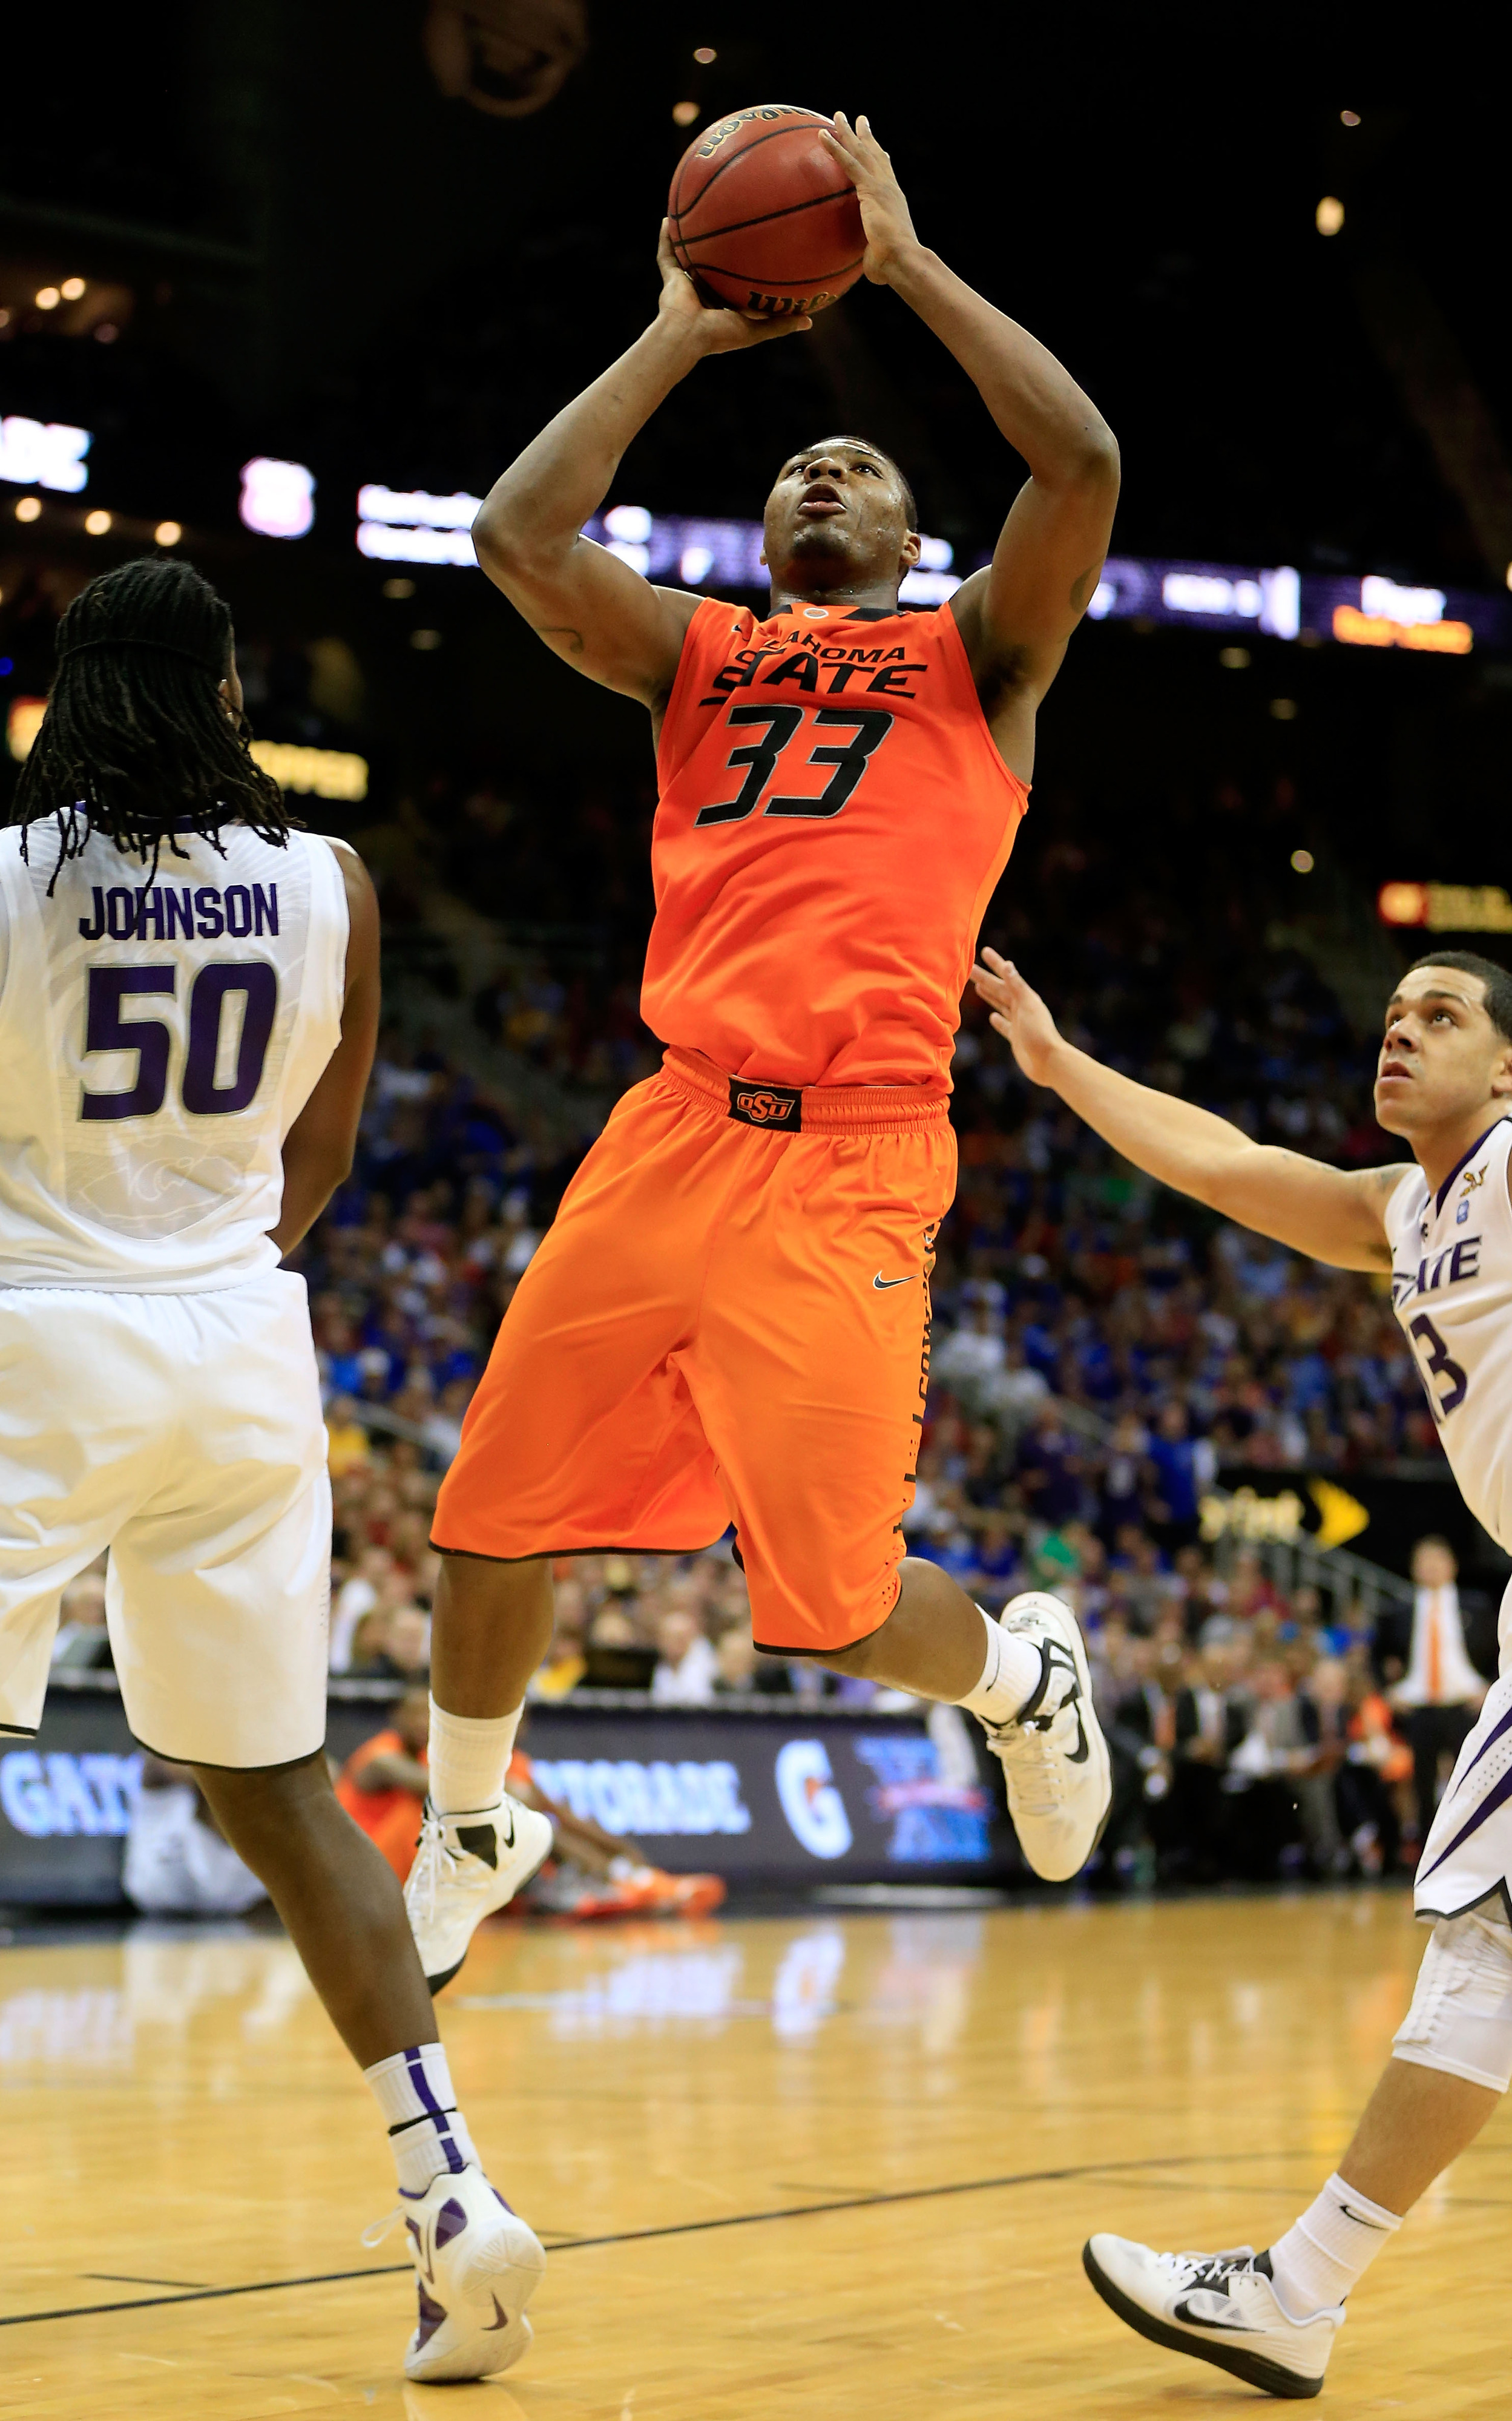 Marcus Smart will return to Oklahoma State for sophomore season, according to report